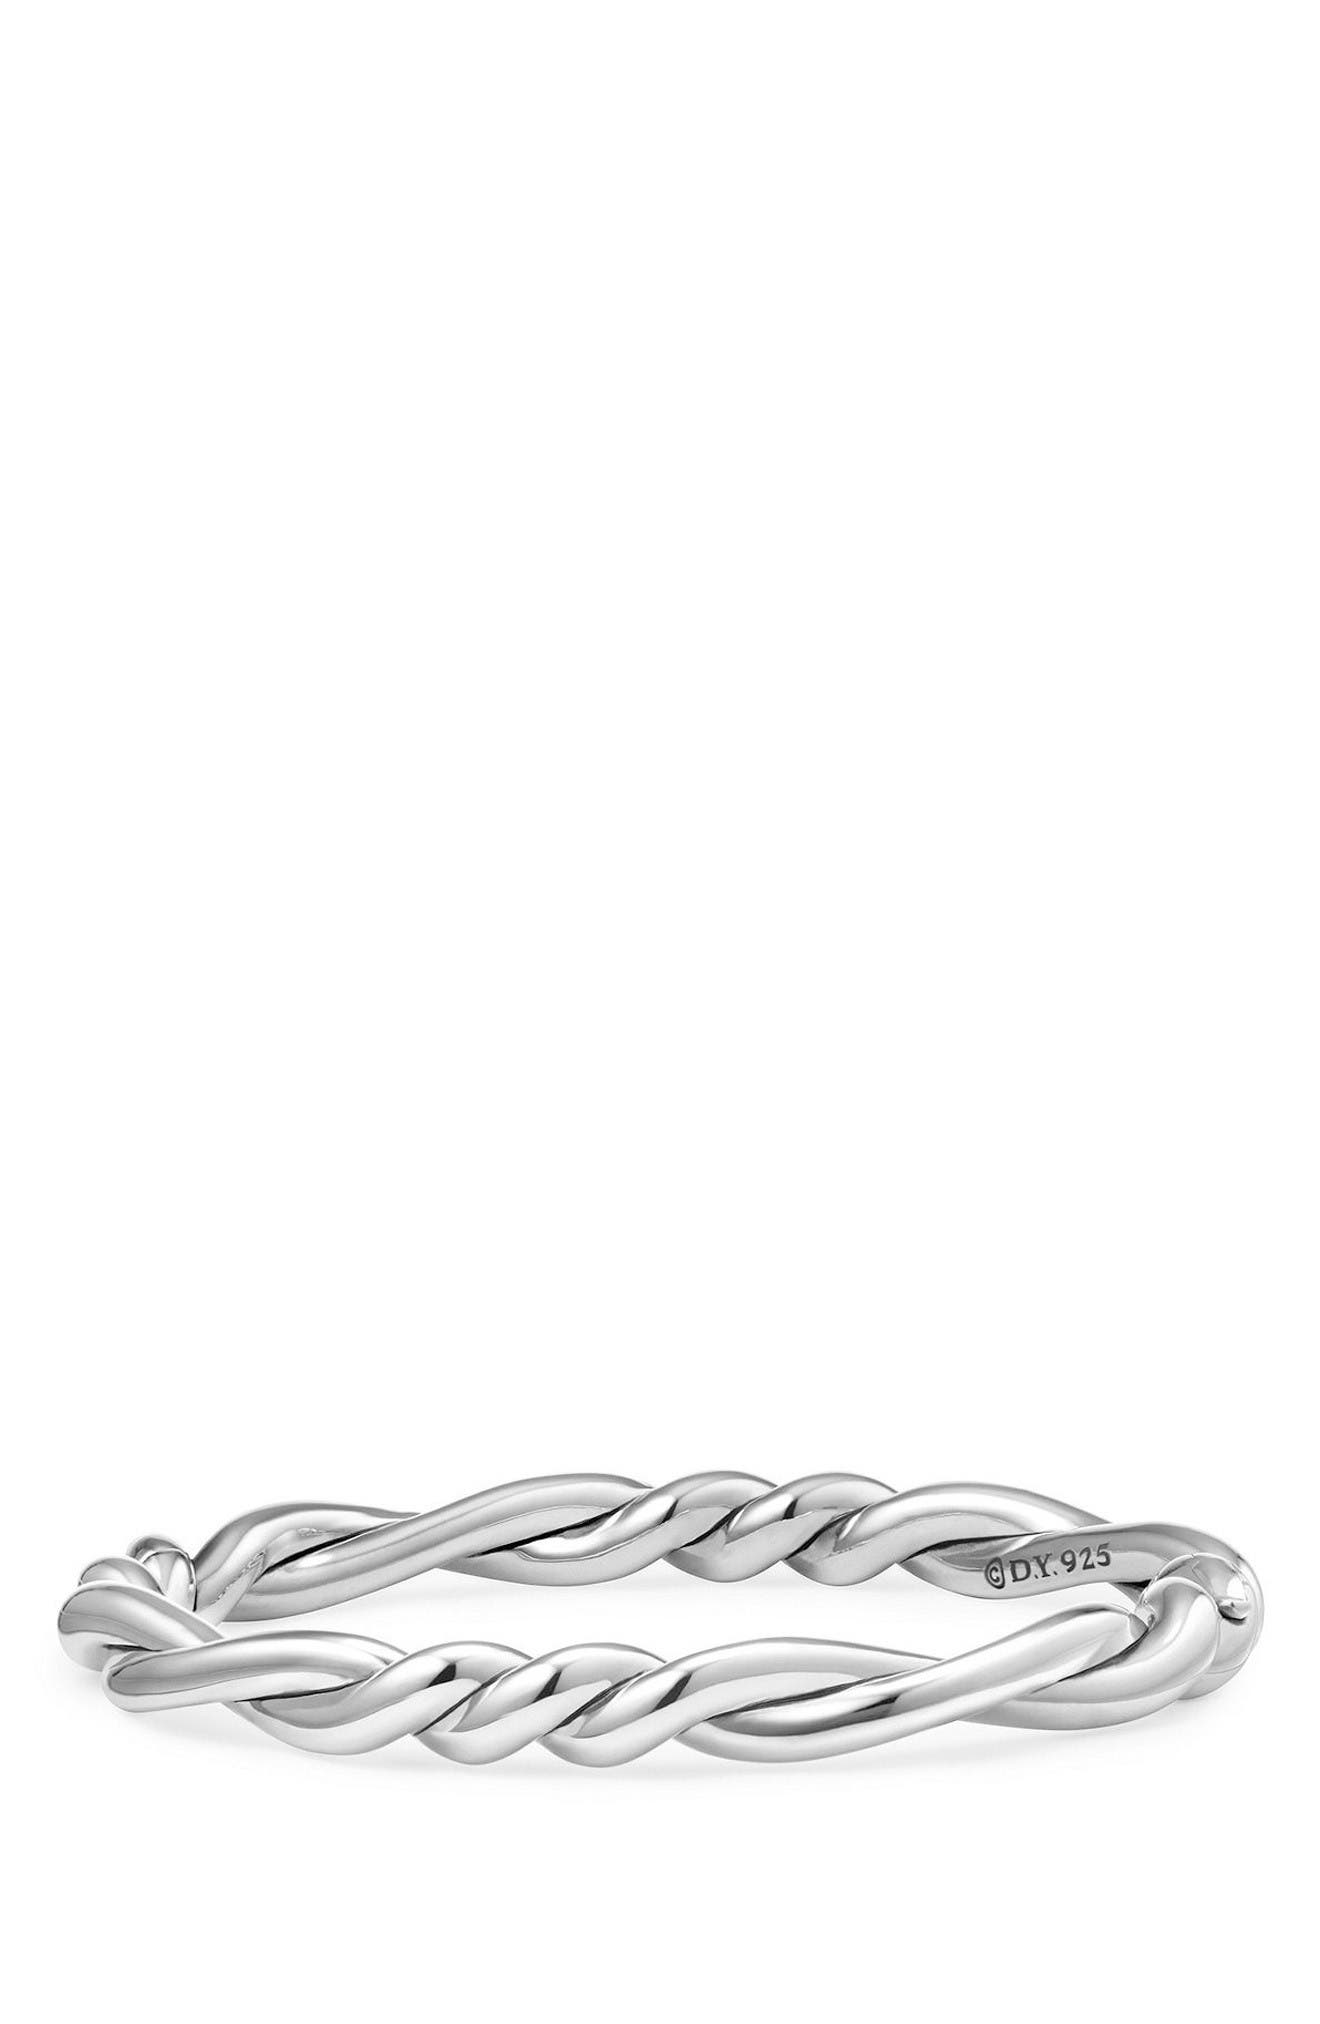 Main Image - David Yurman Continuance Center Twist Bracelet